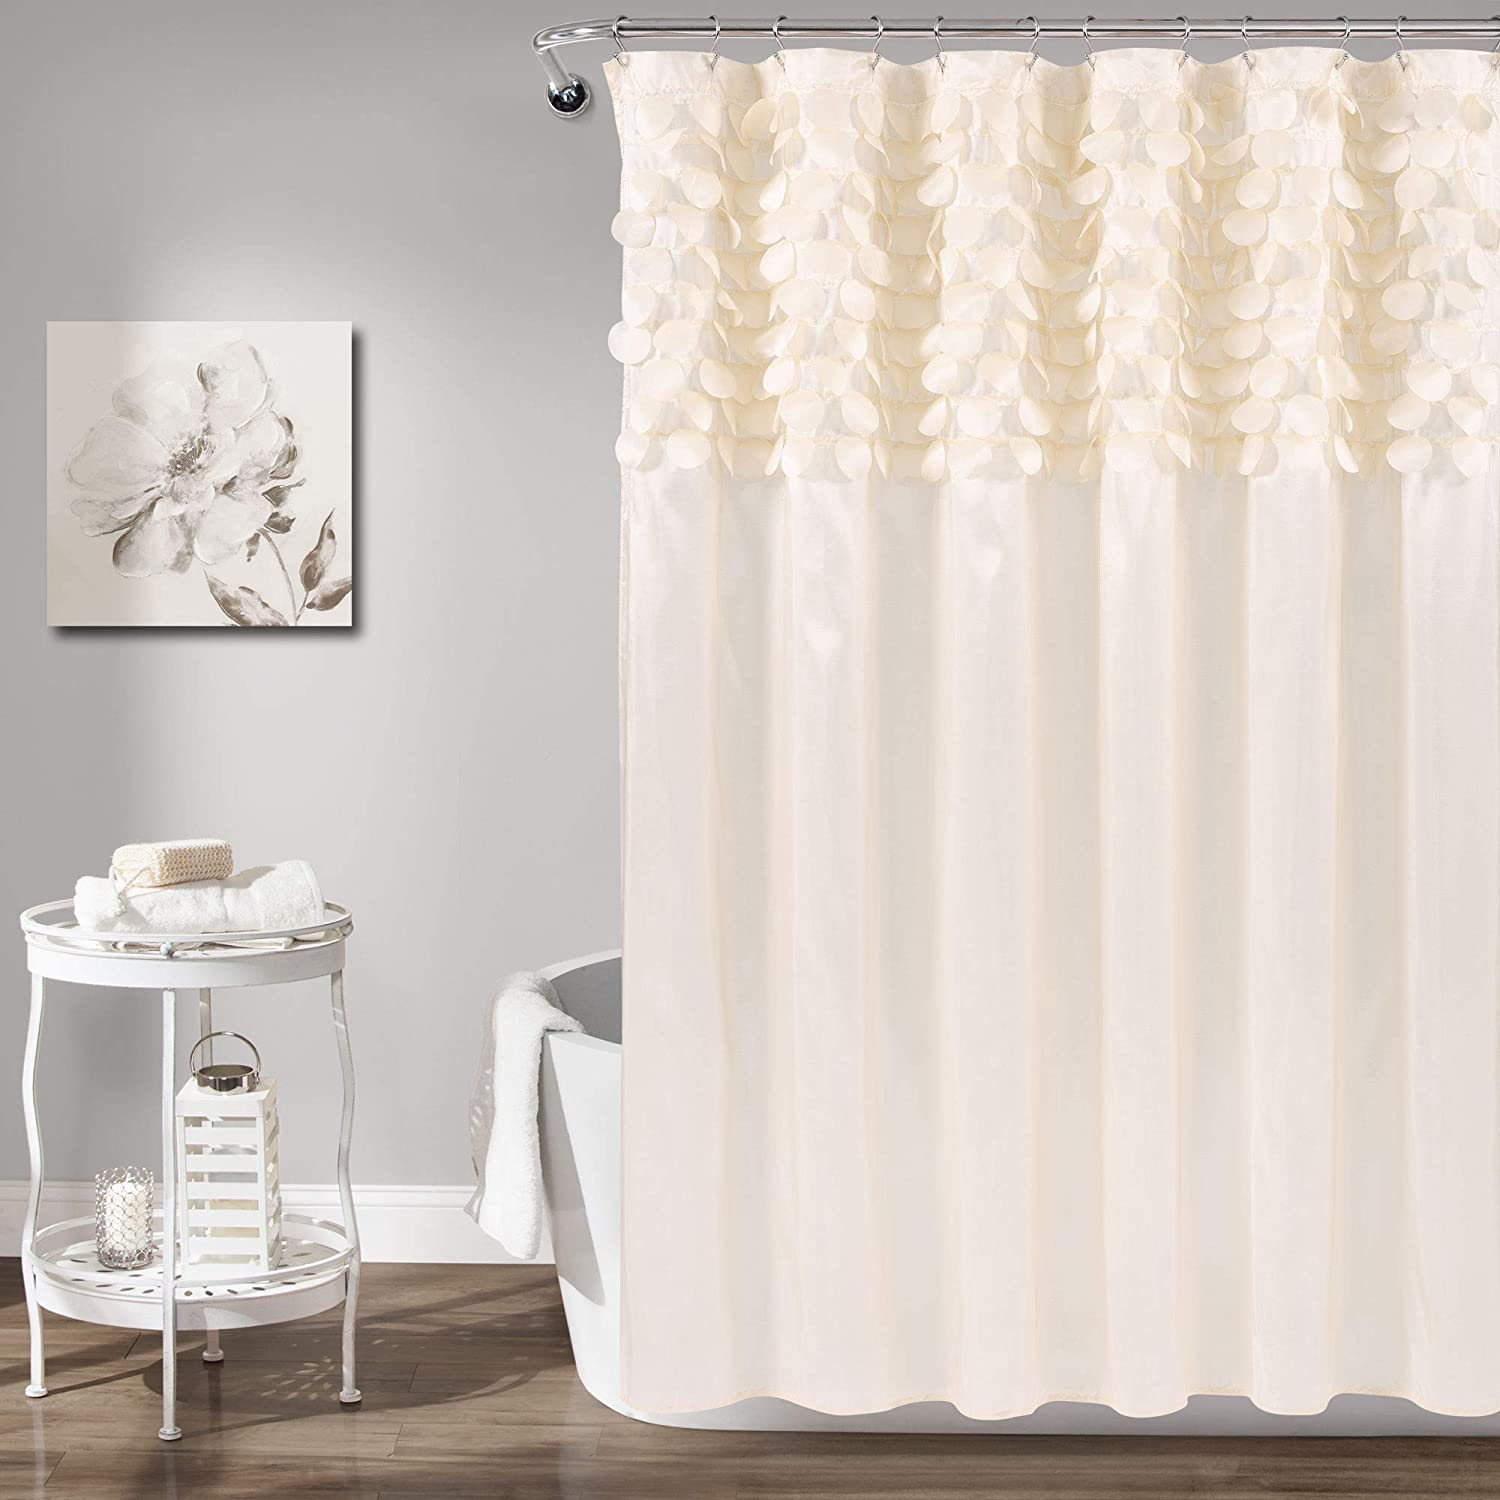 "Lush Decor Lillian Shower Curtain | Textured Shimmer Circle Design Bathroom, 72"" x 72"", Beige"